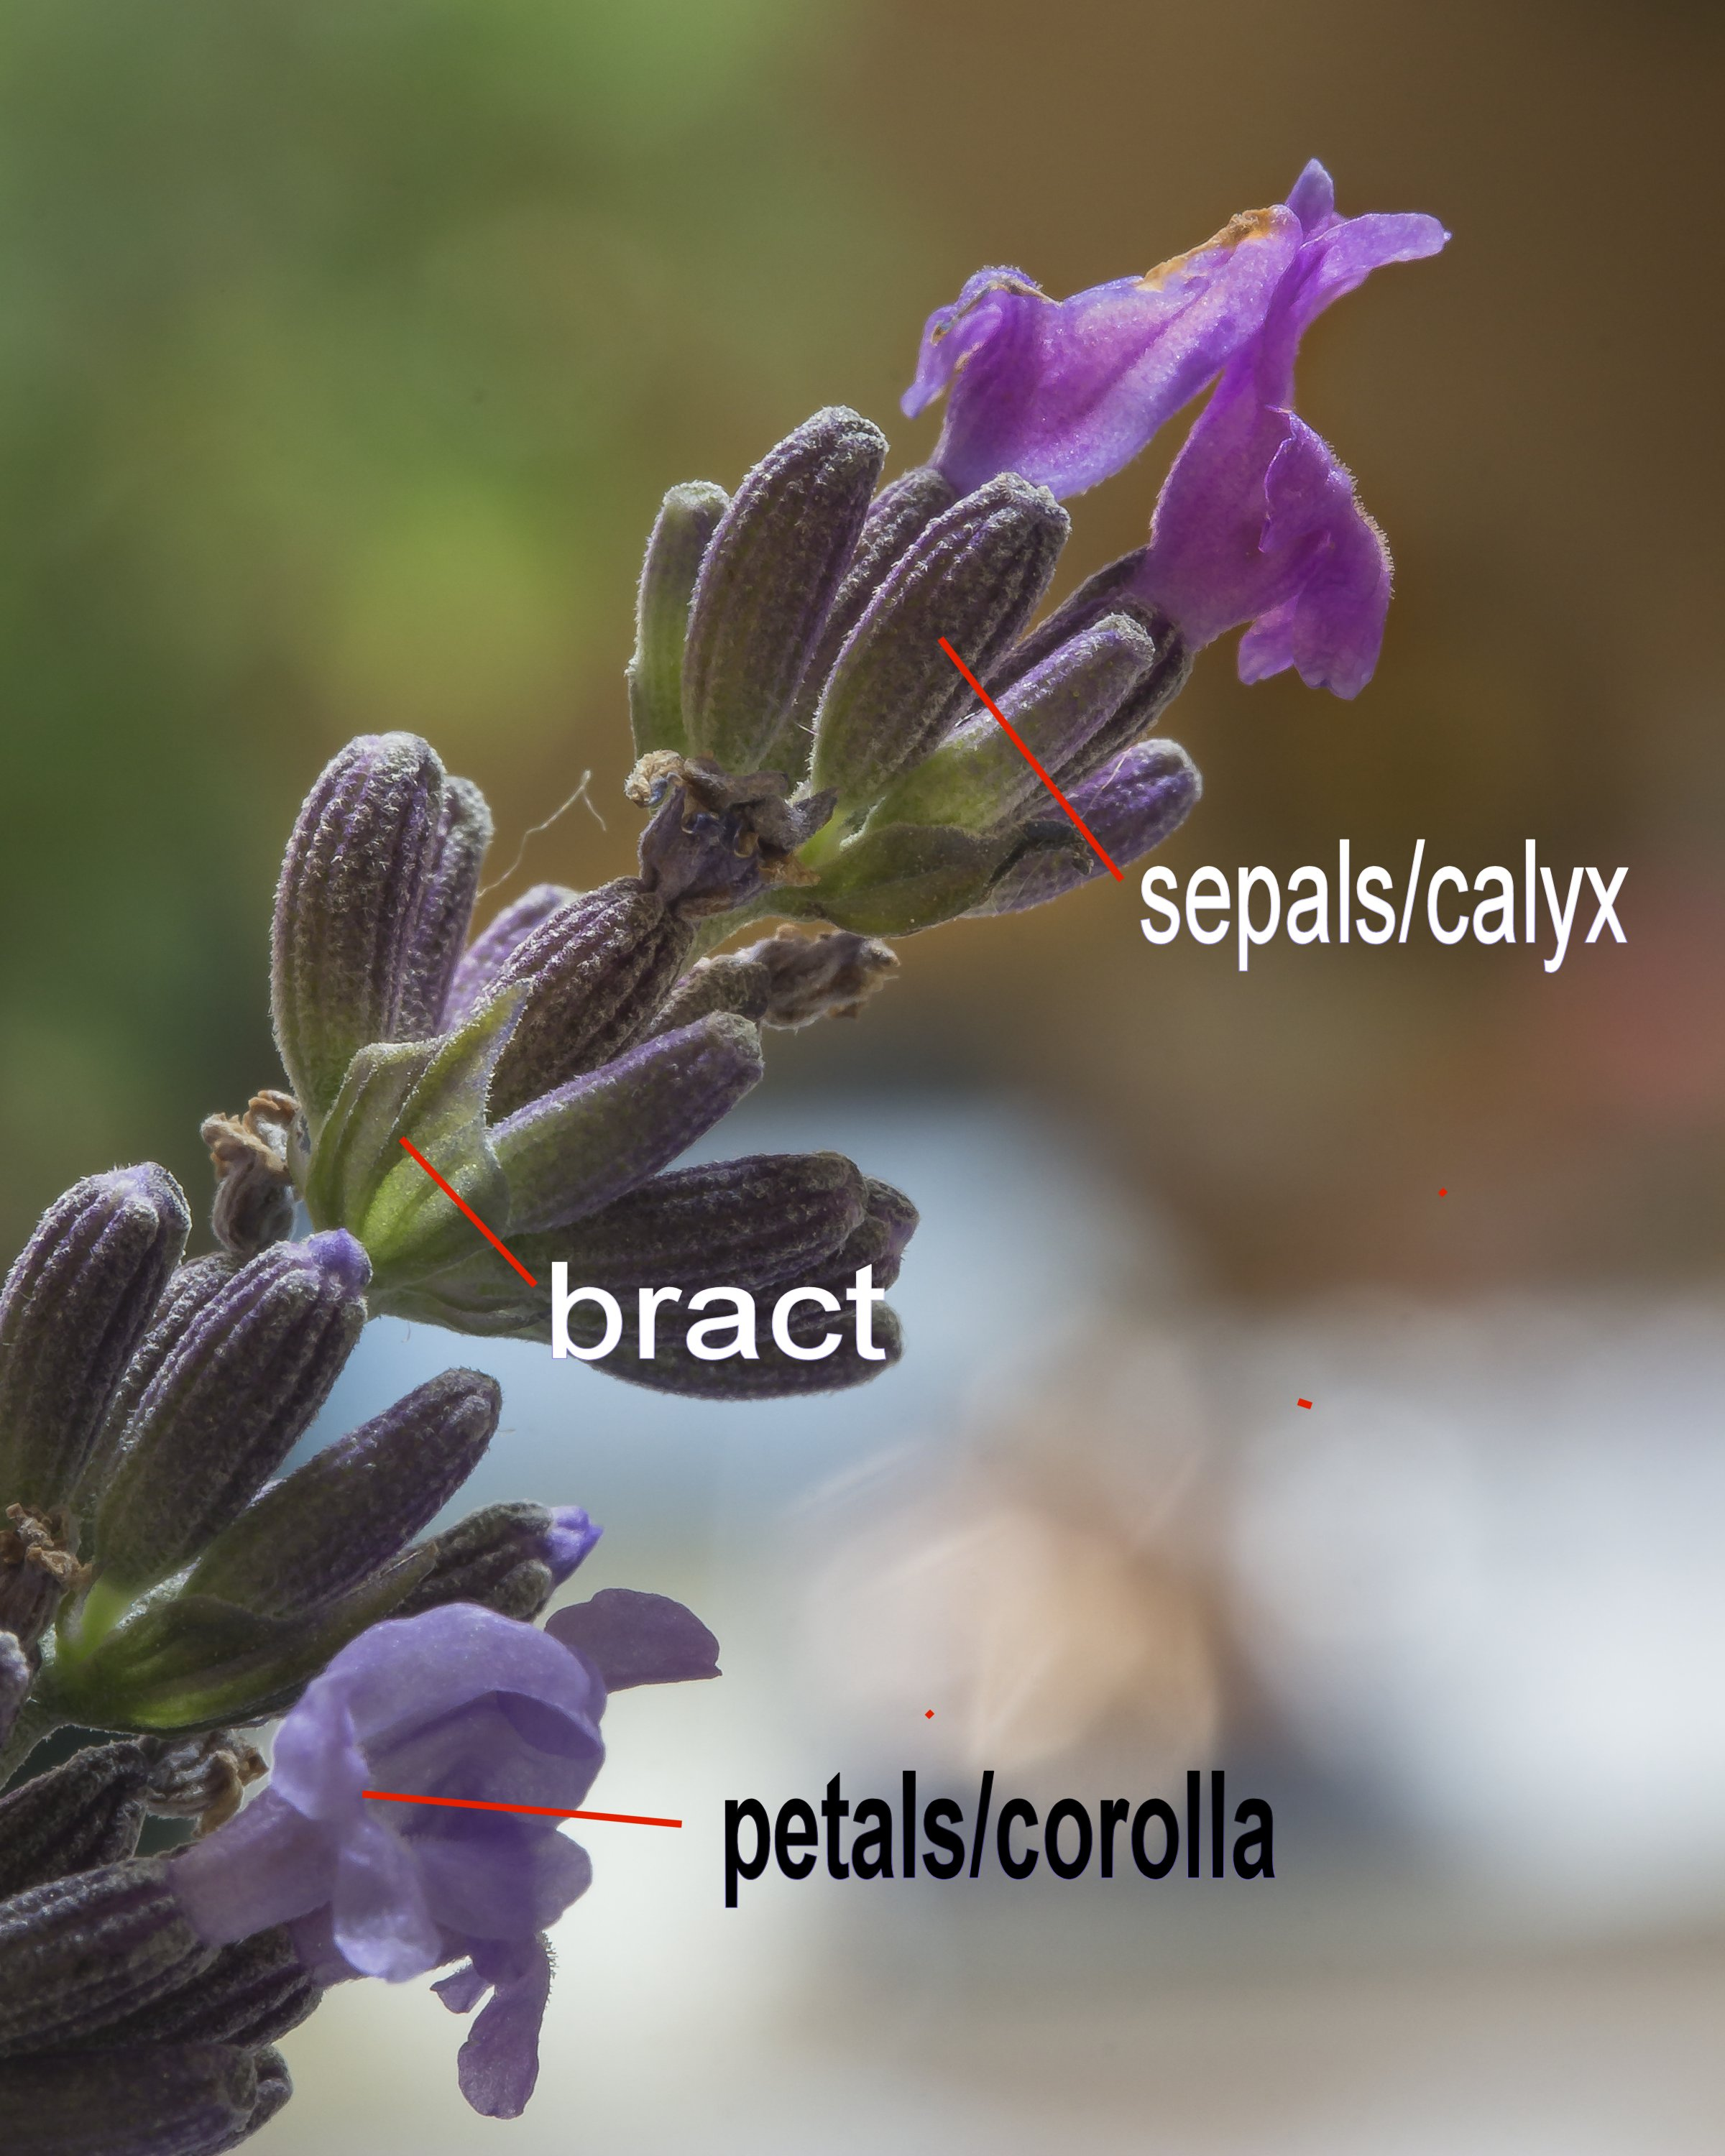 The parts of the lavender flower